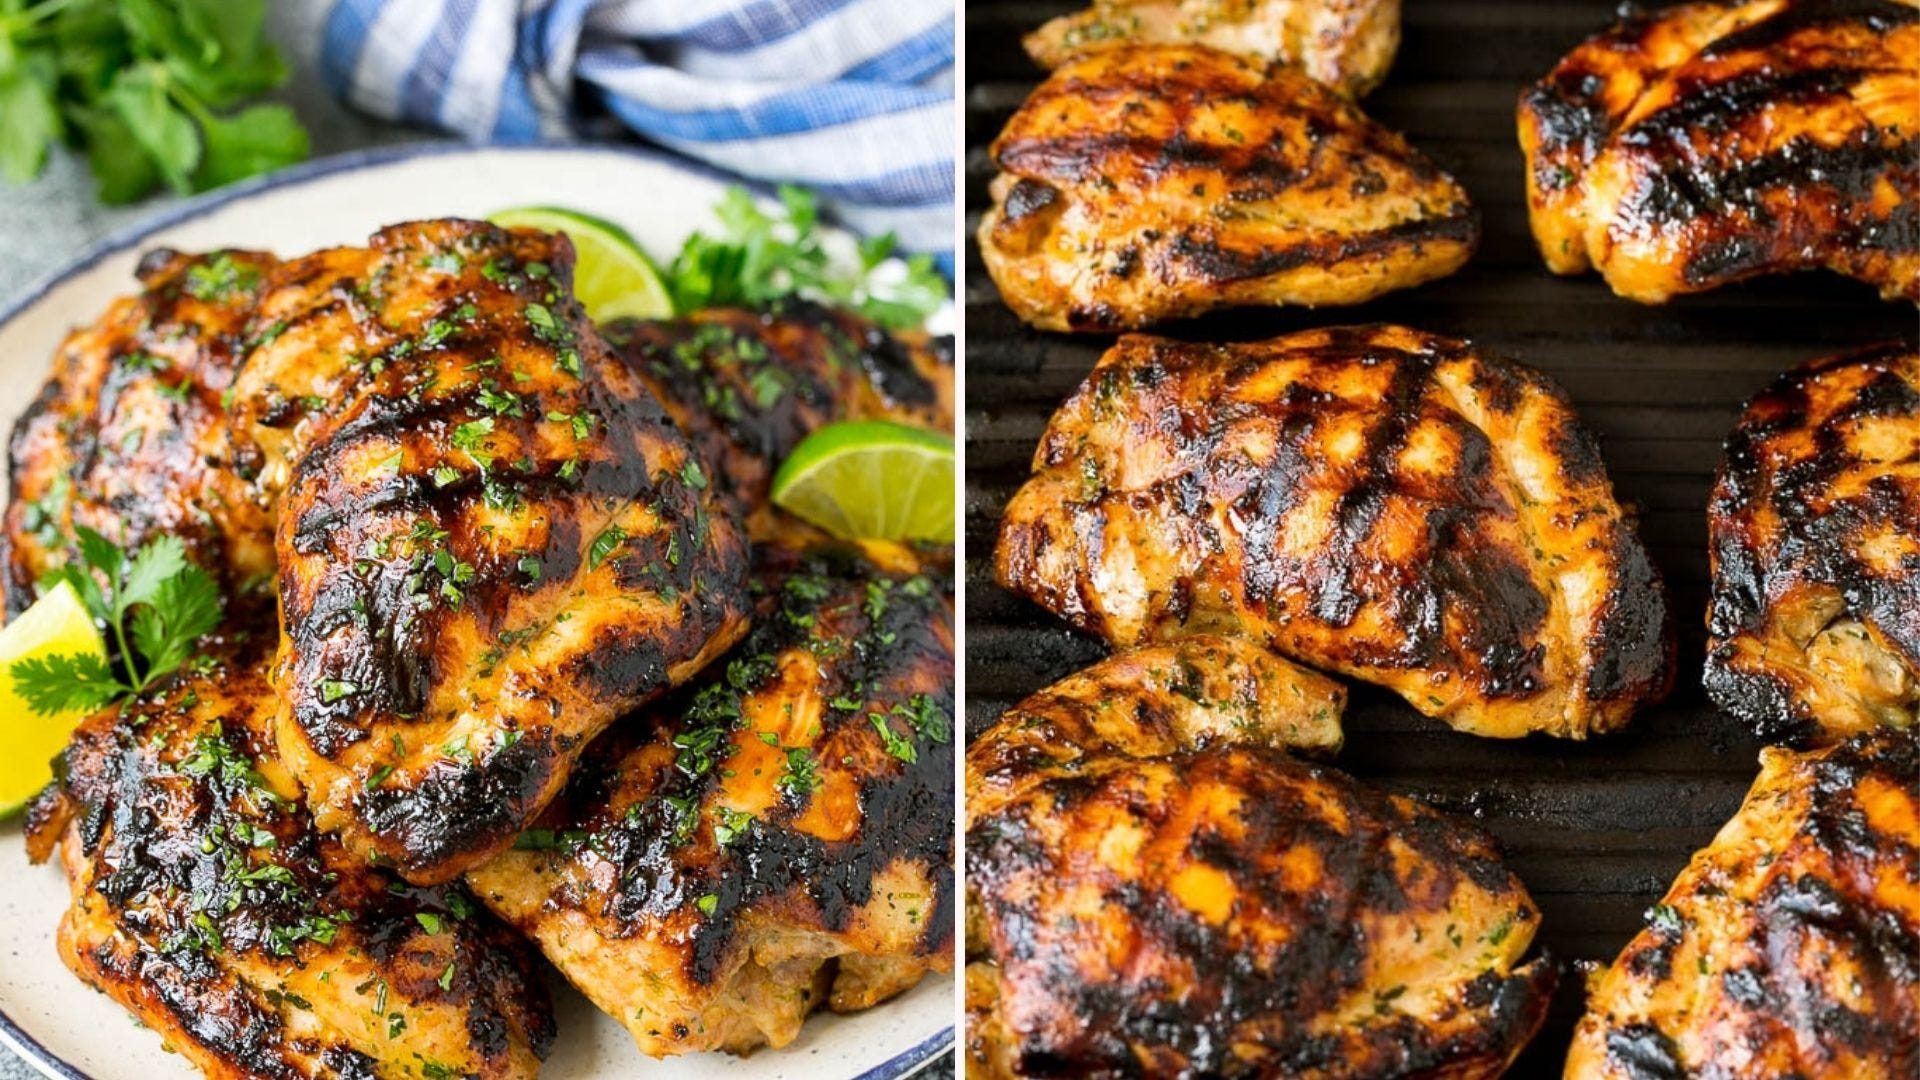 Grilled chicken thighs with a cilantro lime coating.